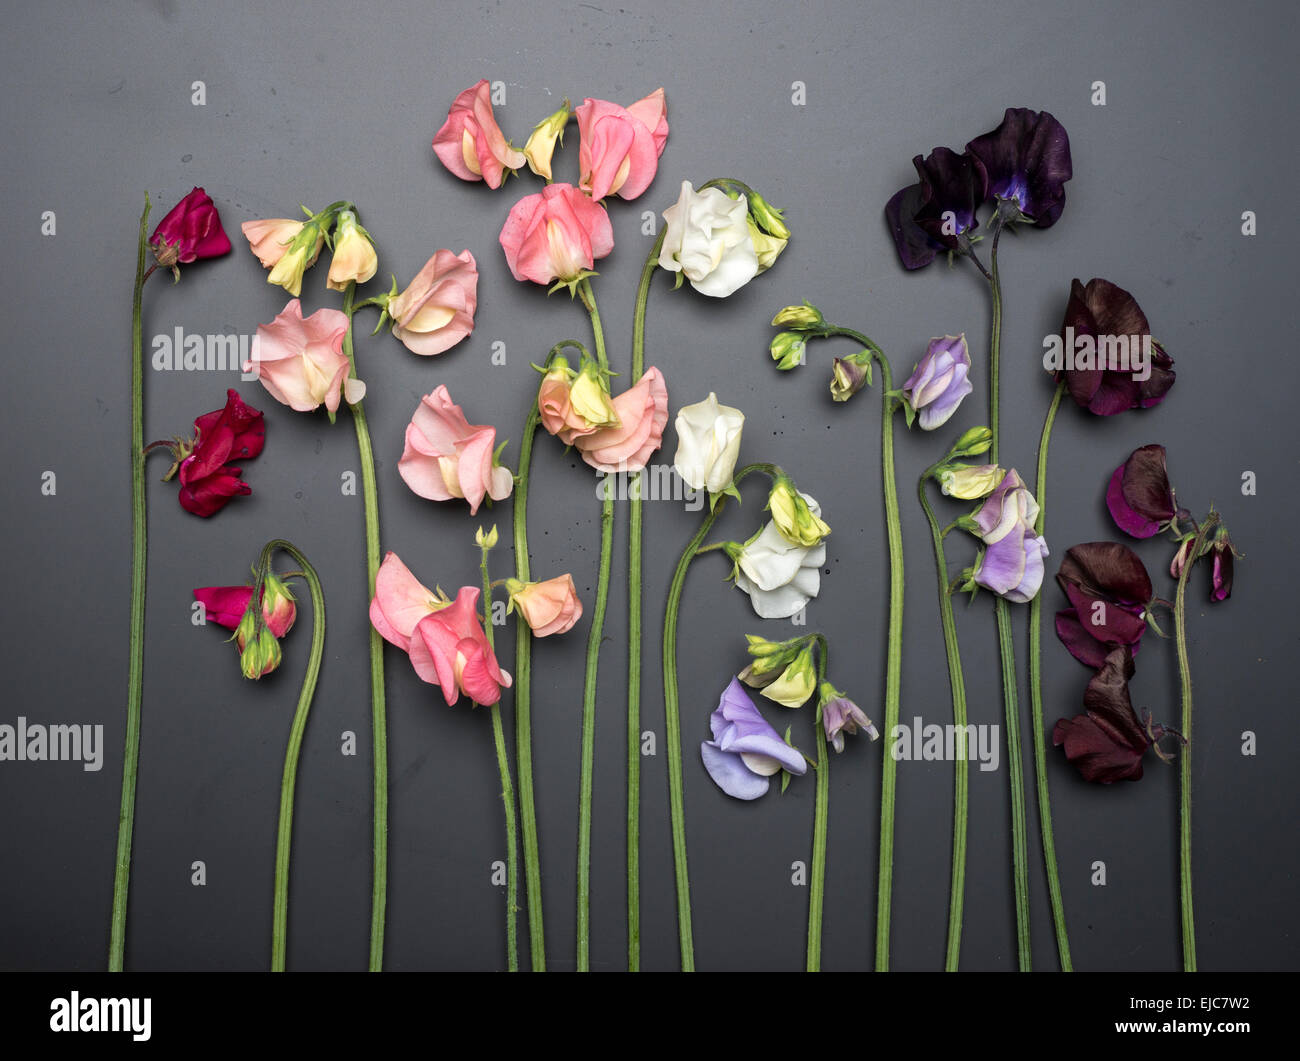 Cut Sweet Peas on Chalkboard Background - Stock Image